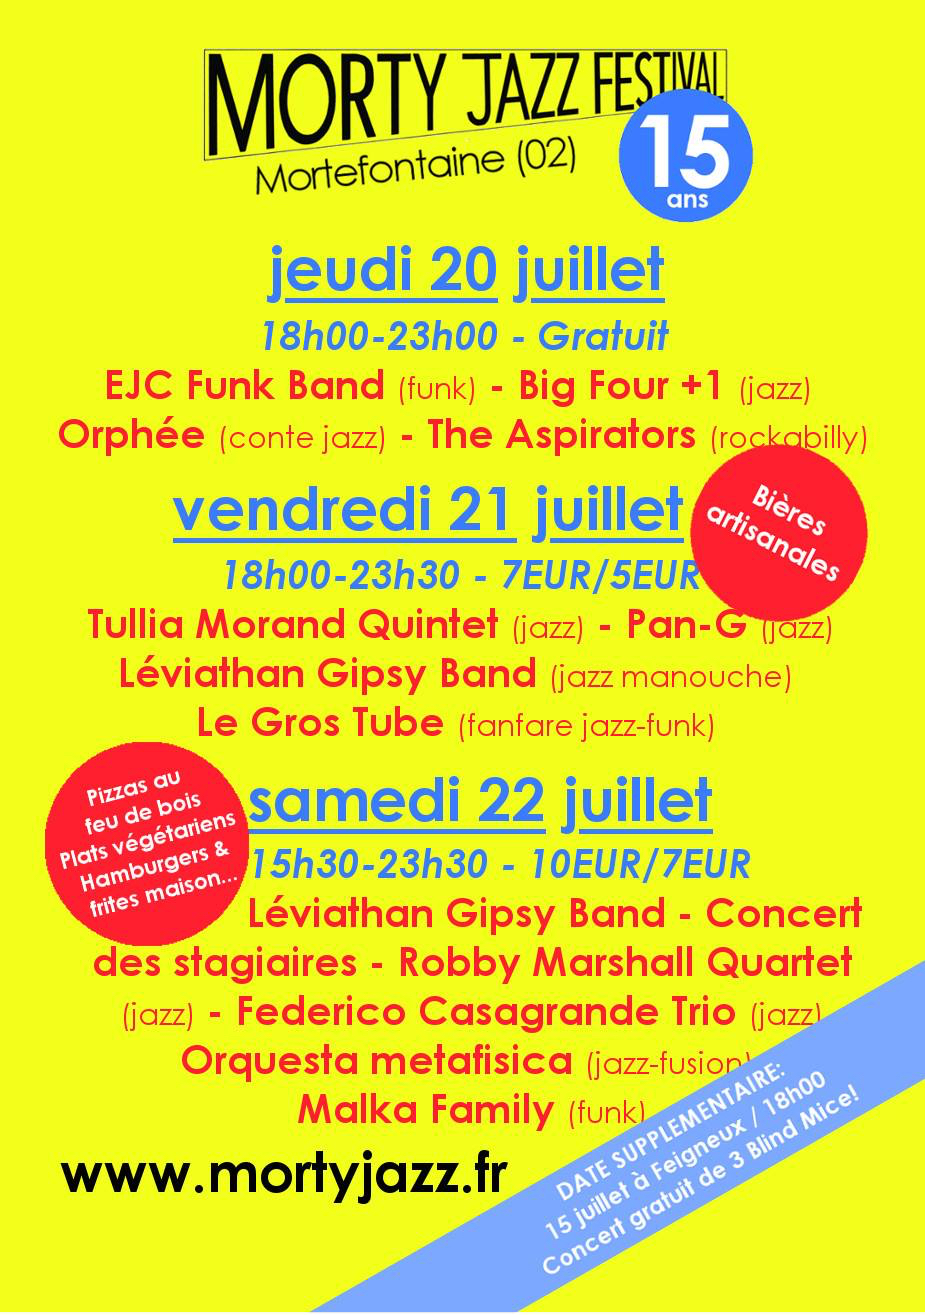 Morty Jazz Festival Flyer.jpg